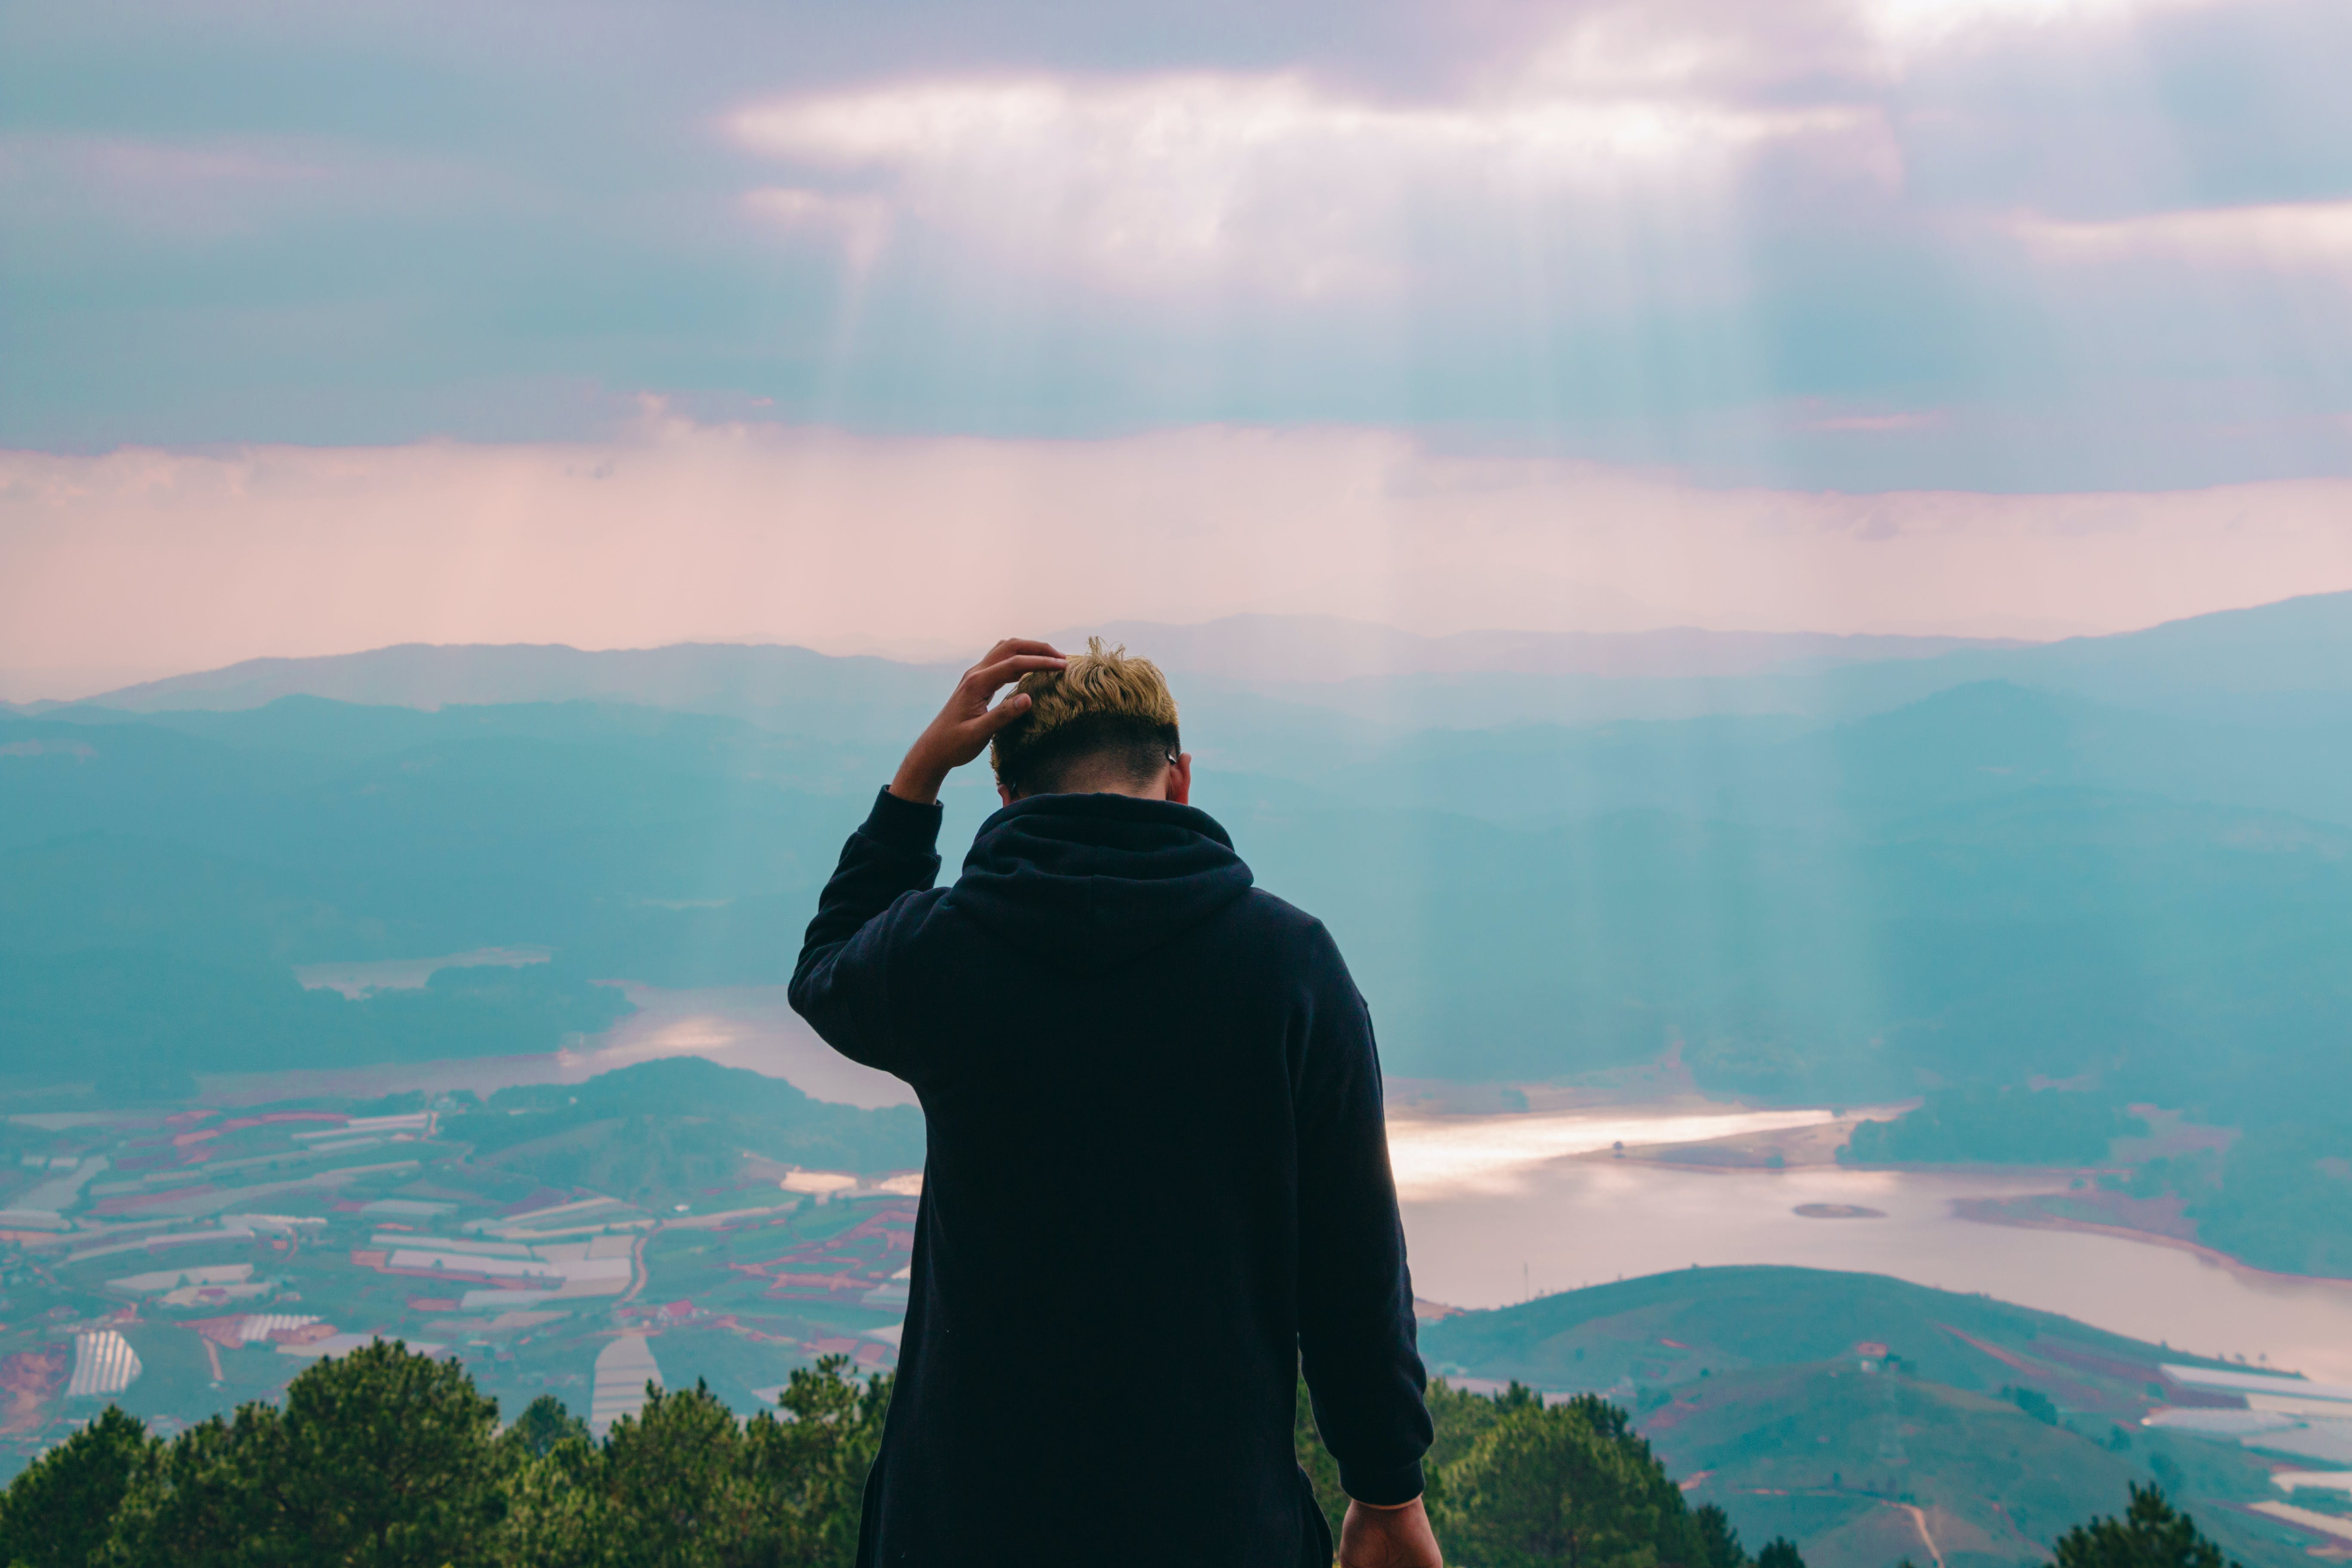 Man in Black Jacket Holding His Hair Facing Body of Water